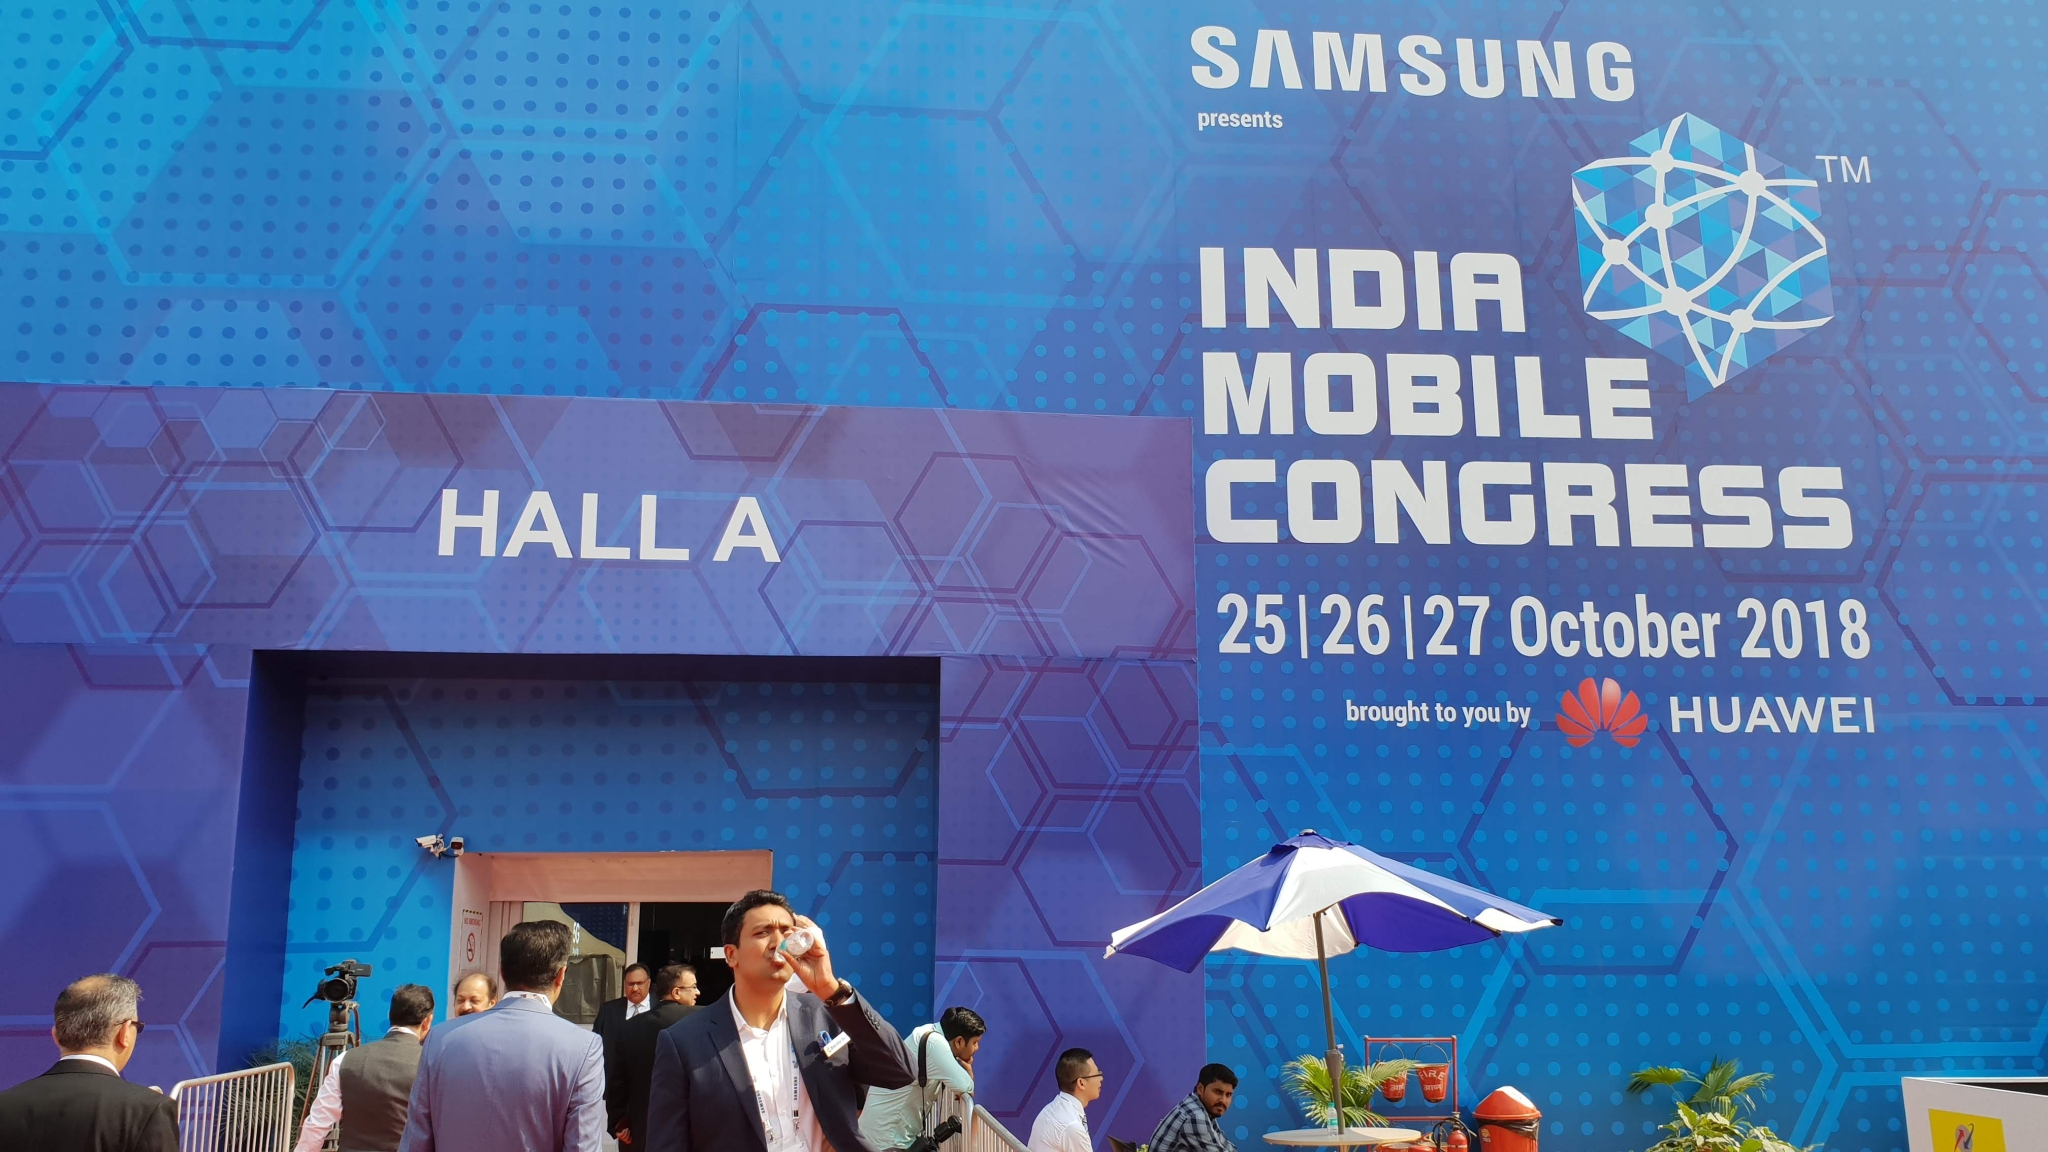 India Mobile Congress 2019: What We Expect to See This Year?